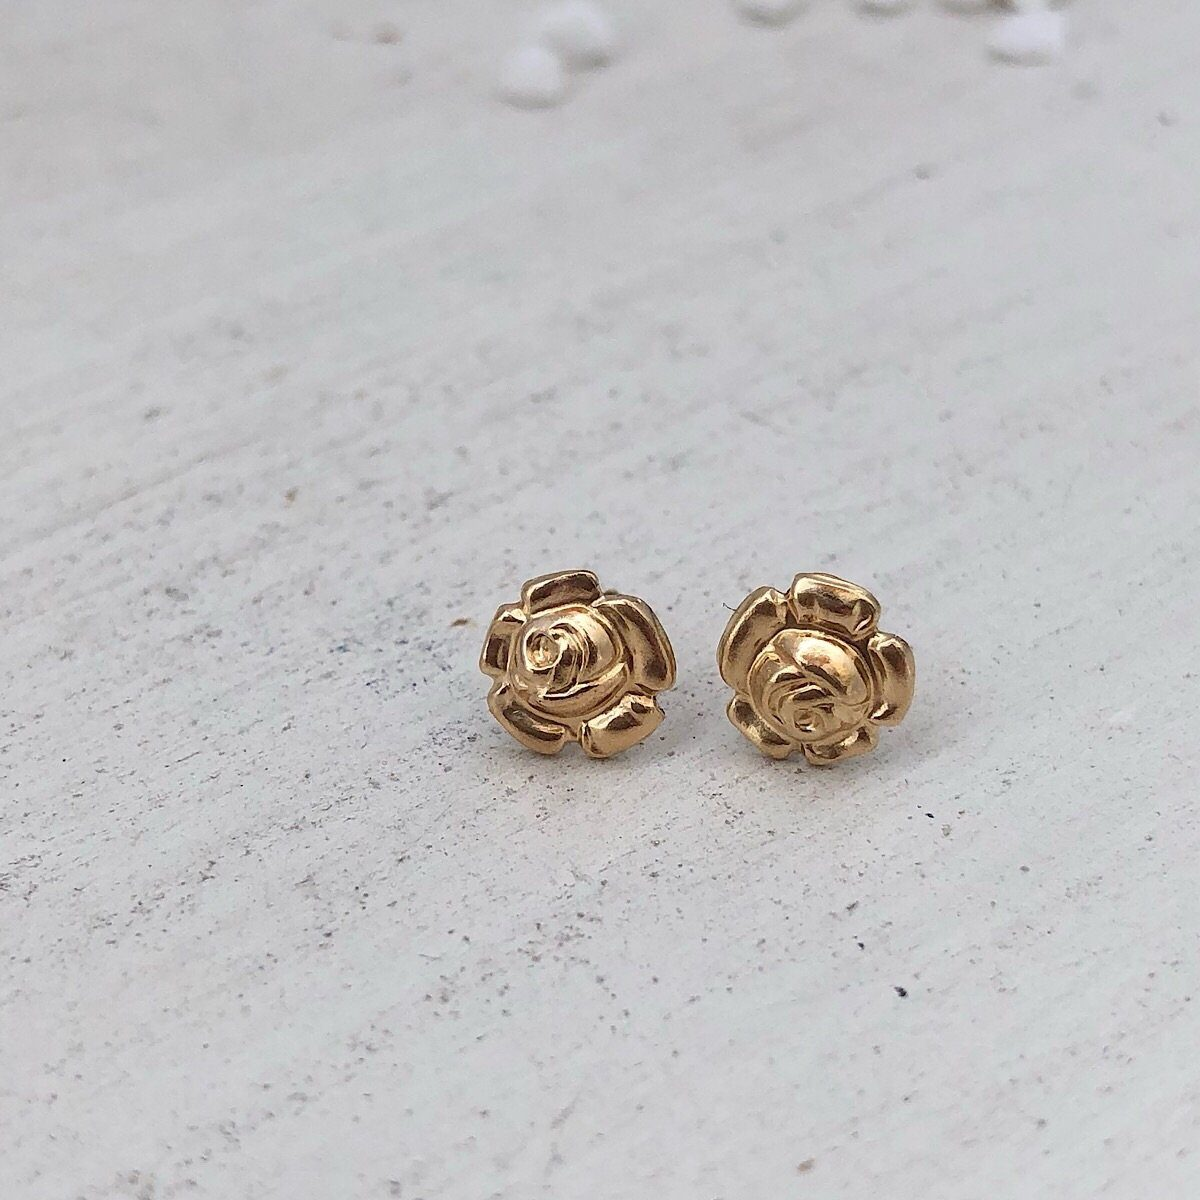 Rosebud Stud Earrings  - IsabelleGraceJewelry